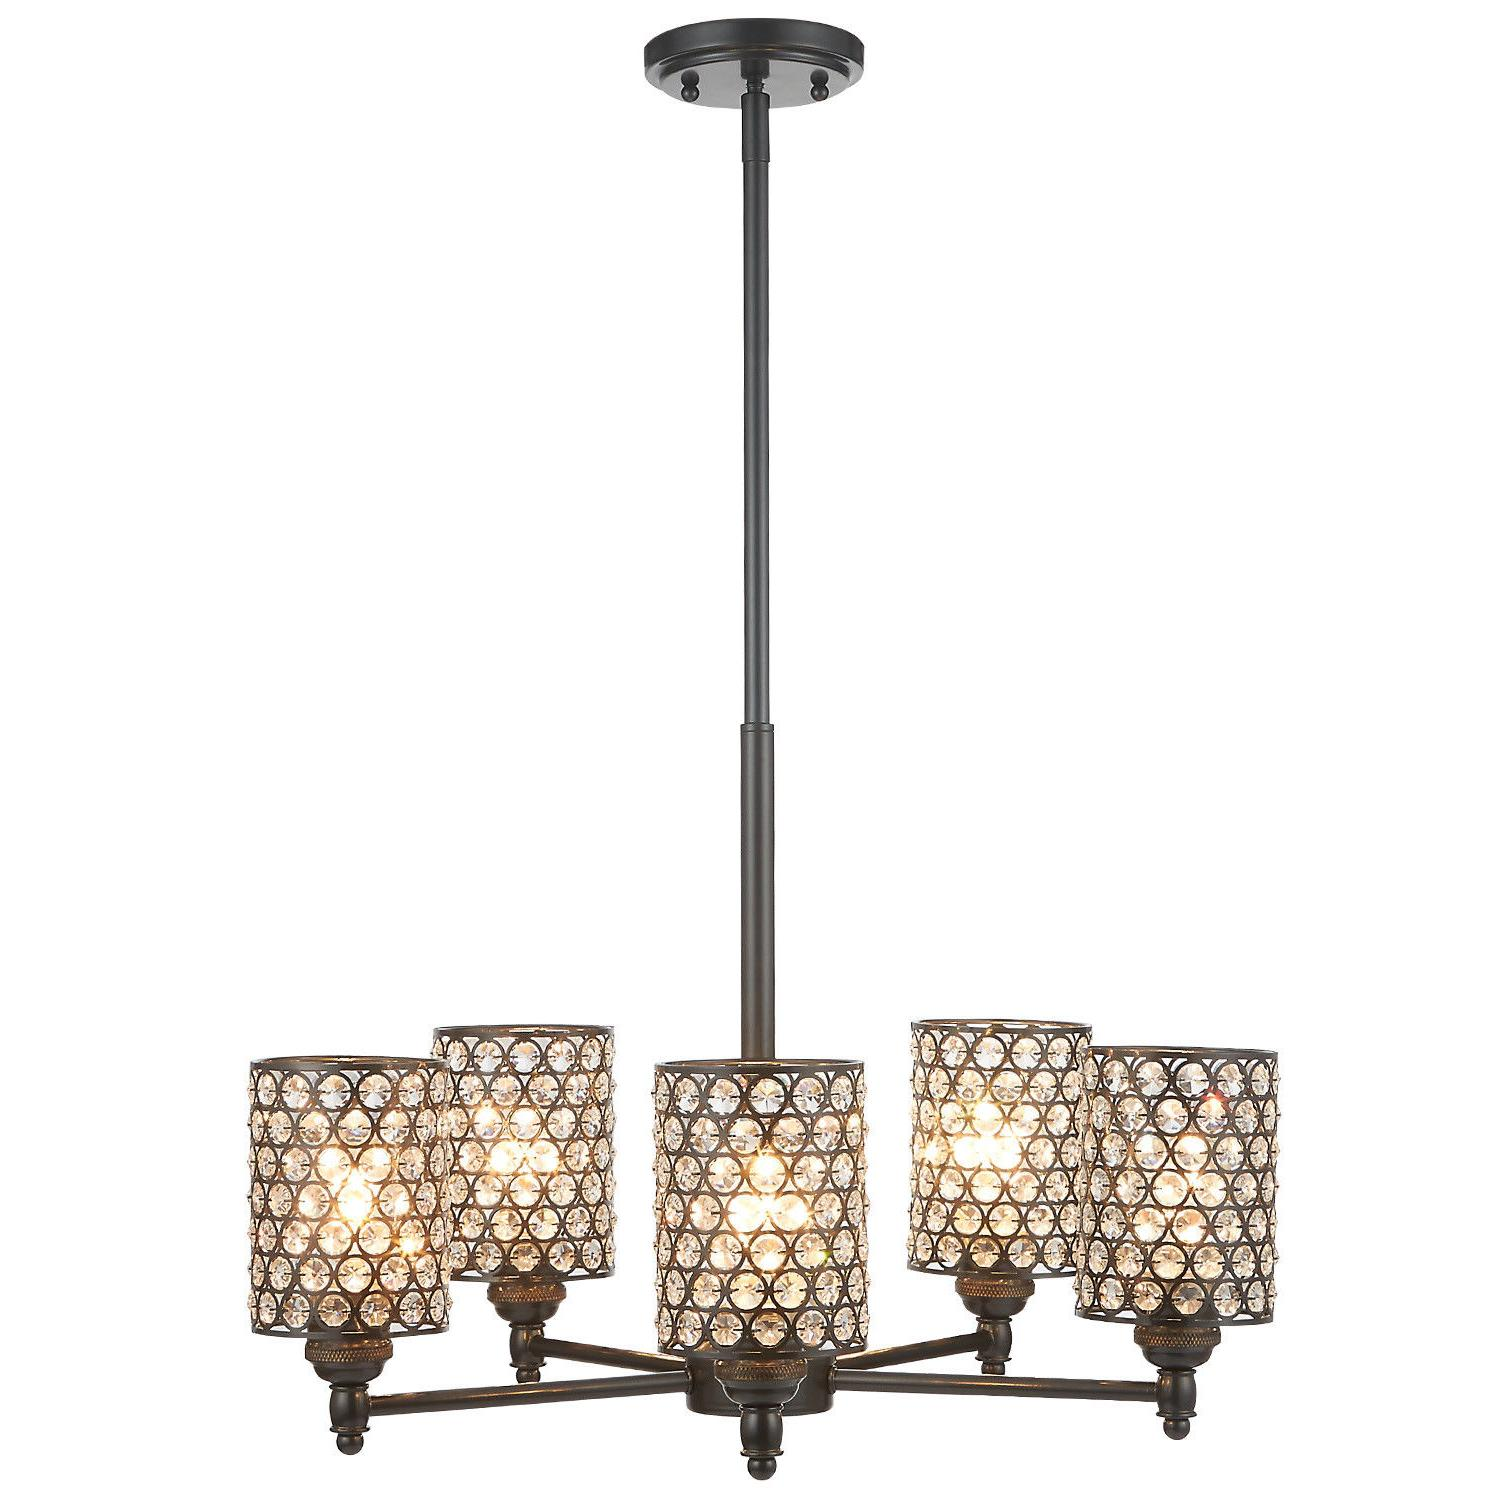 3 5 light chandelier lighting with crystal